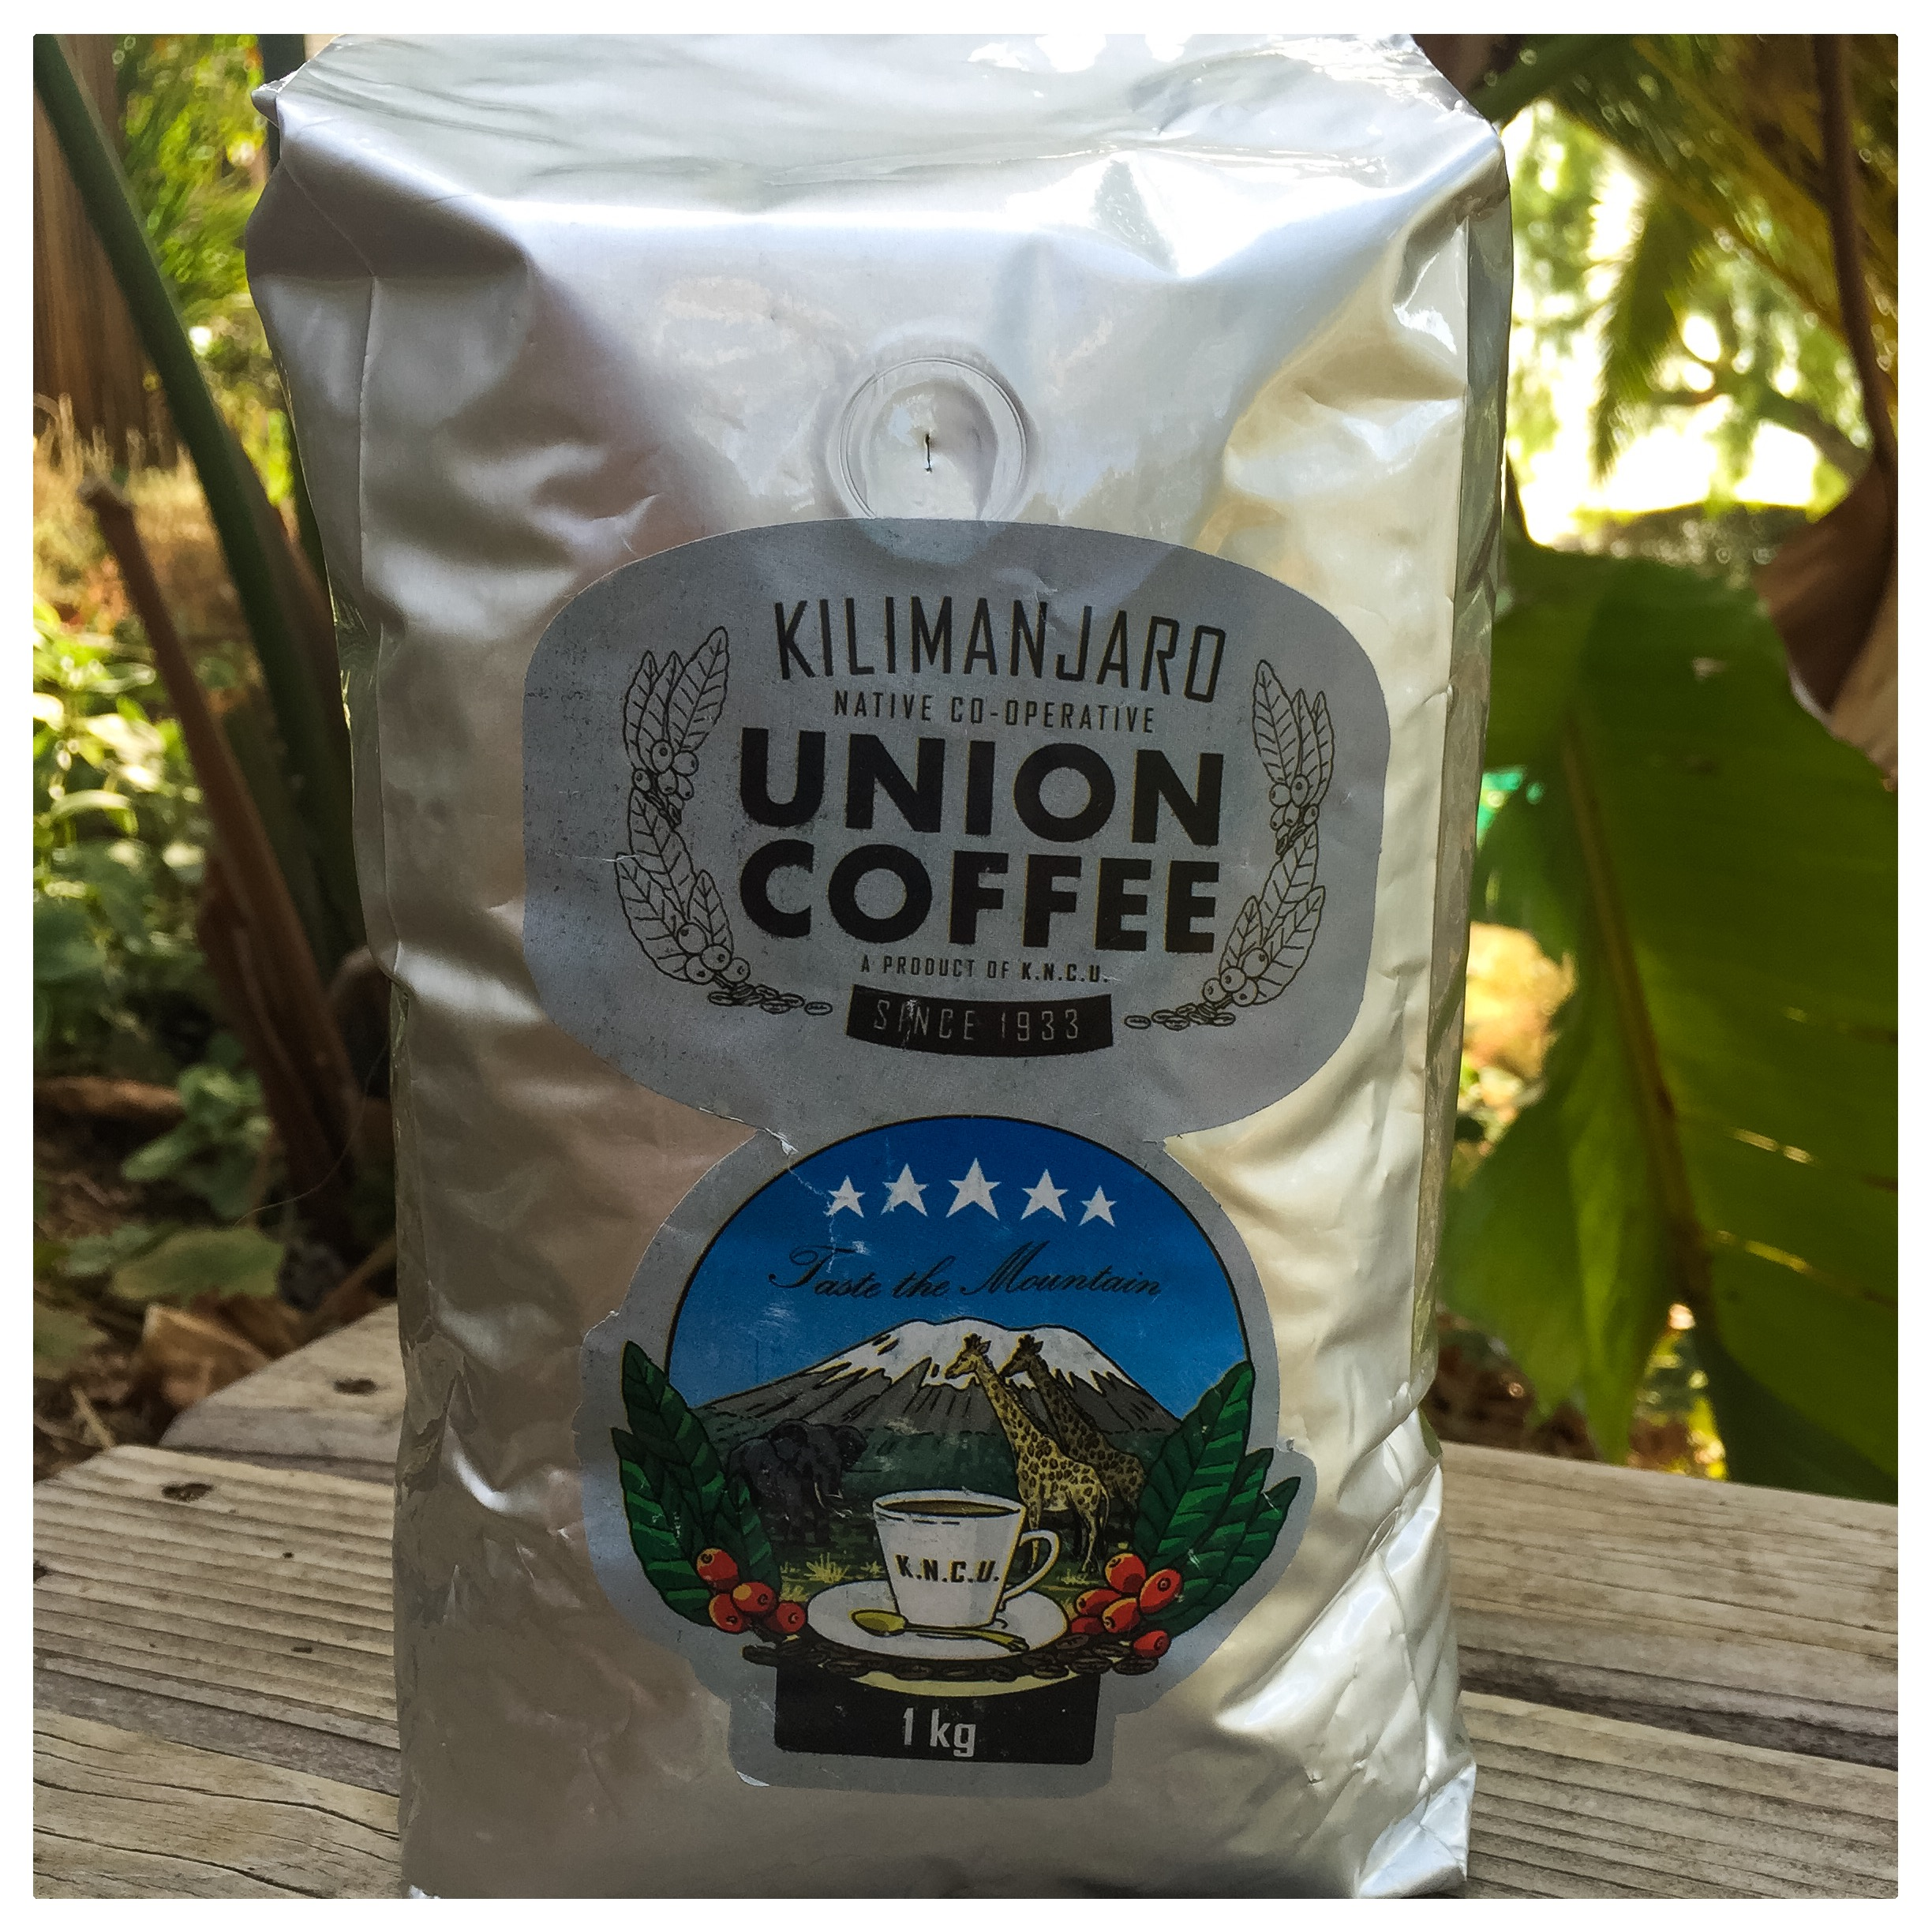 One kilogram of fresh, dark roast coffee. If it tastes half as good as it smells, you're in for a serious treat! Learn more about this Tanzanian co-op  here !